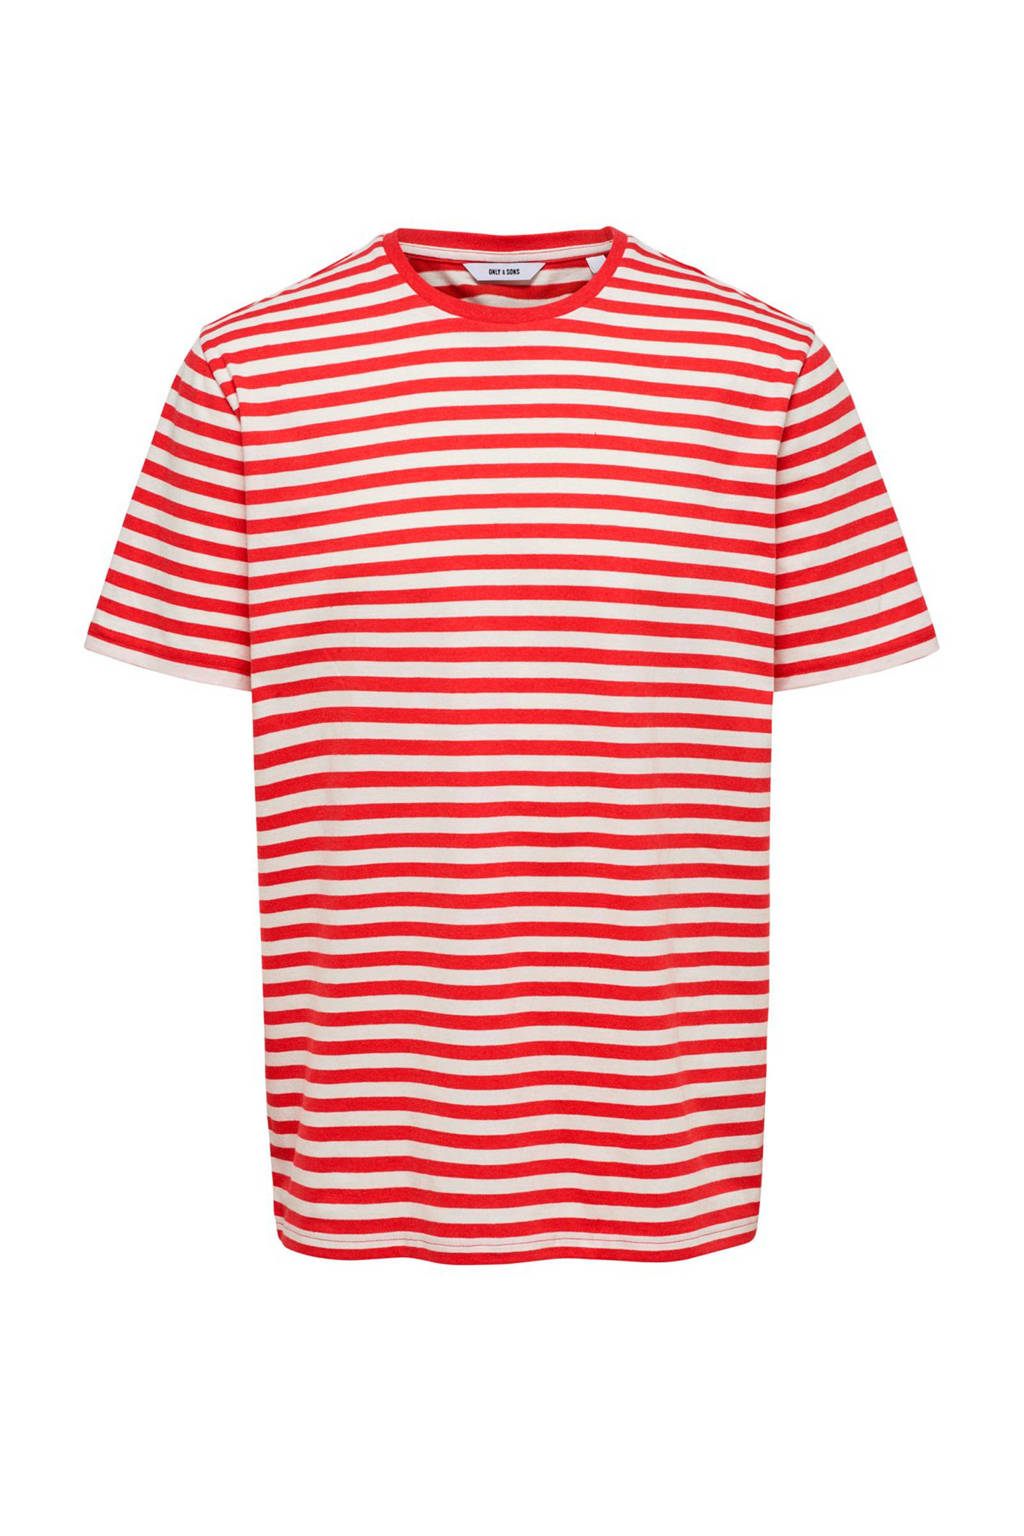 Only & Sons T-shirt met strepen, Rood/wit